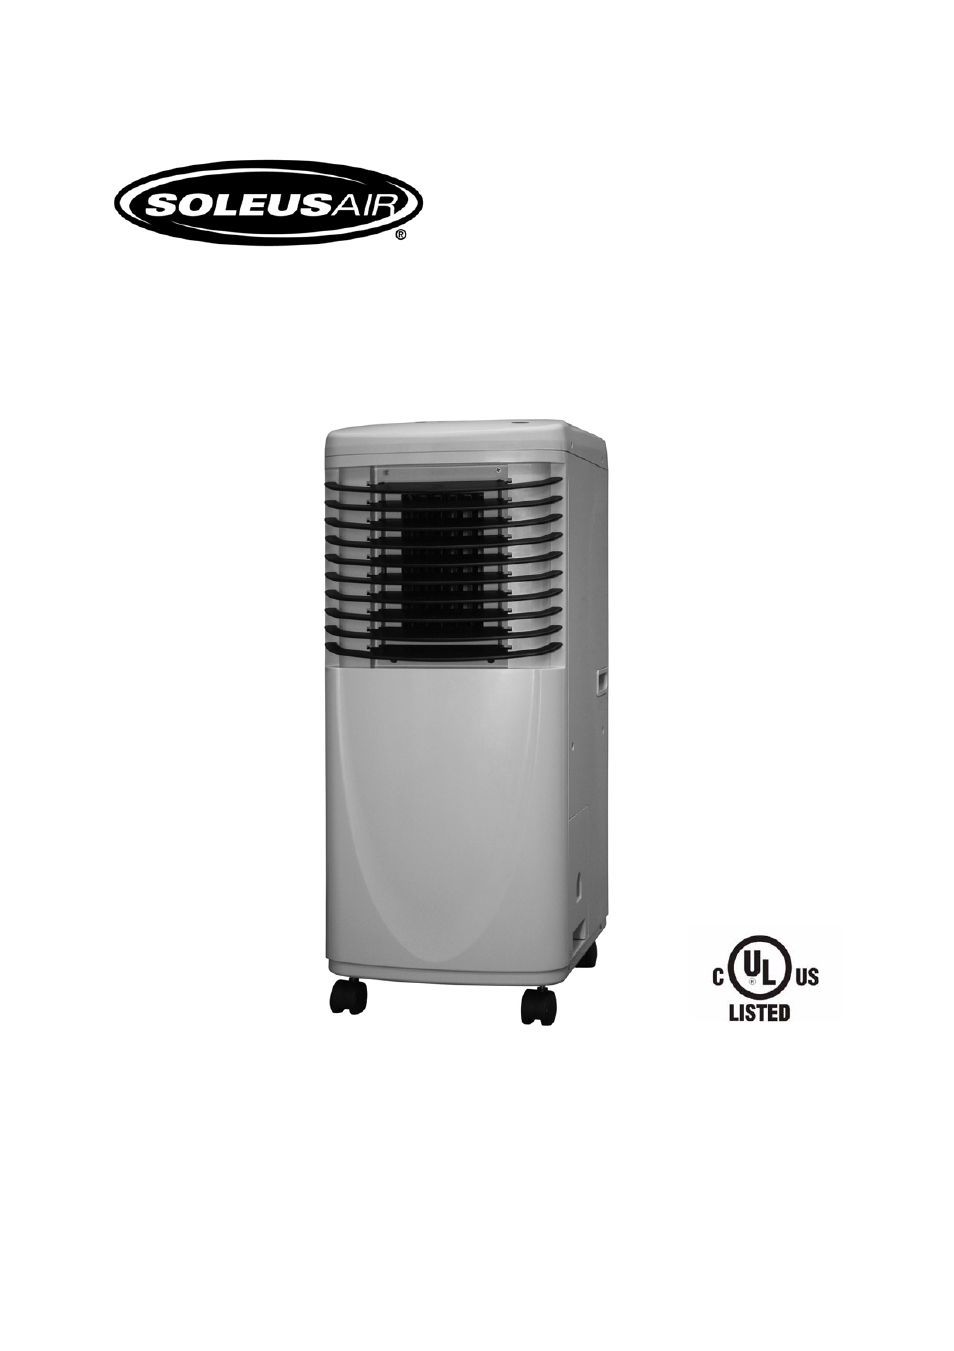 Soleus Air Dehumidifier Owner S Manual What Is A Humidifier Wiring Diagram Mac 8000 User 14 Pages Page1 8000html